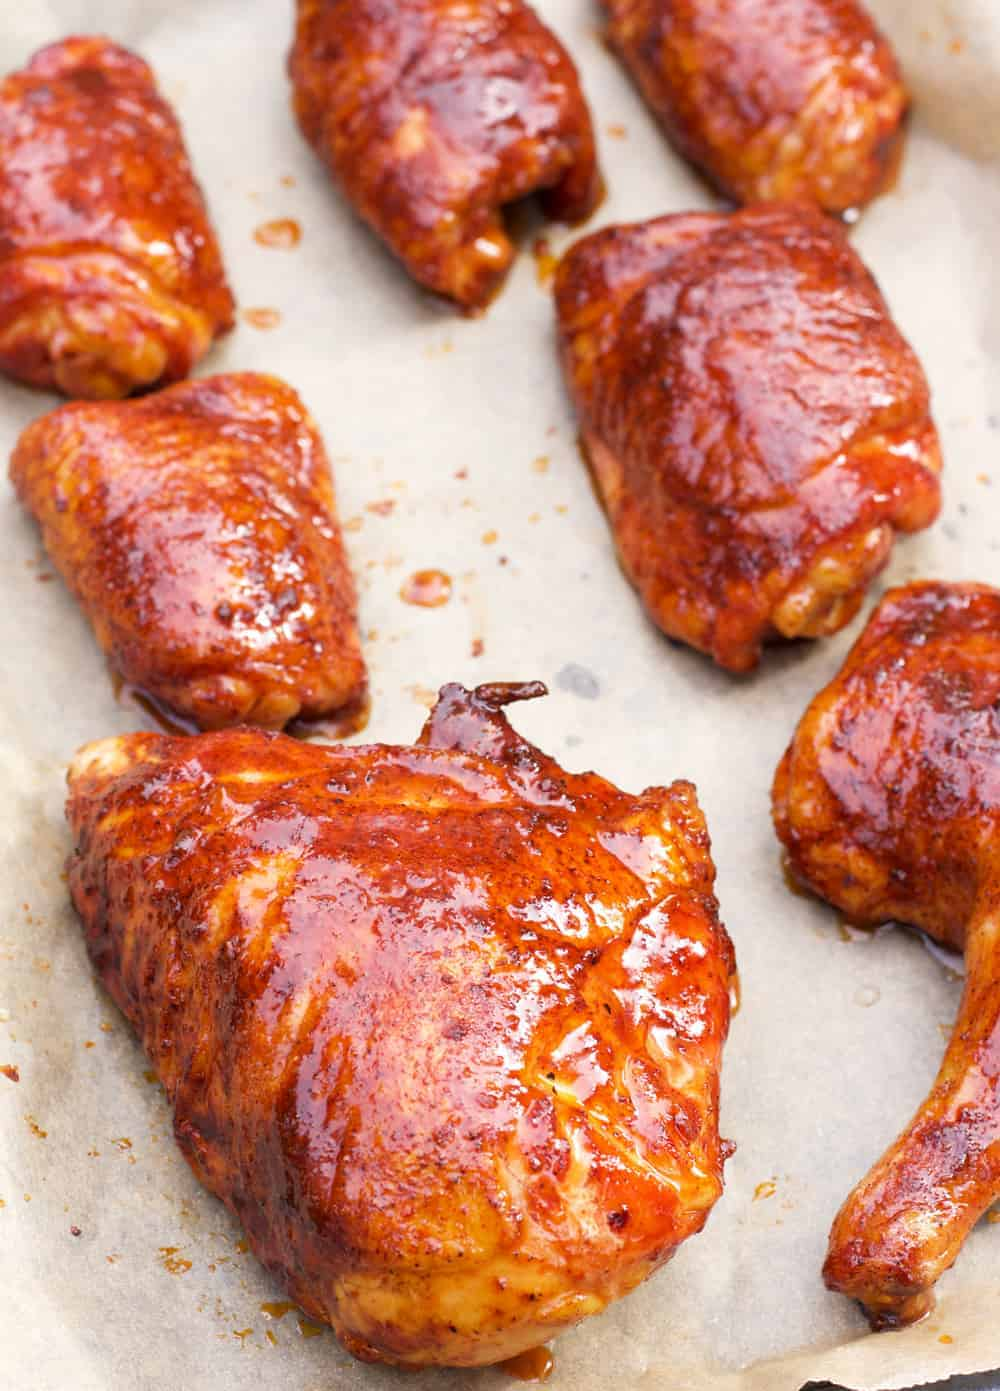 Barbecue Glazed Chicken